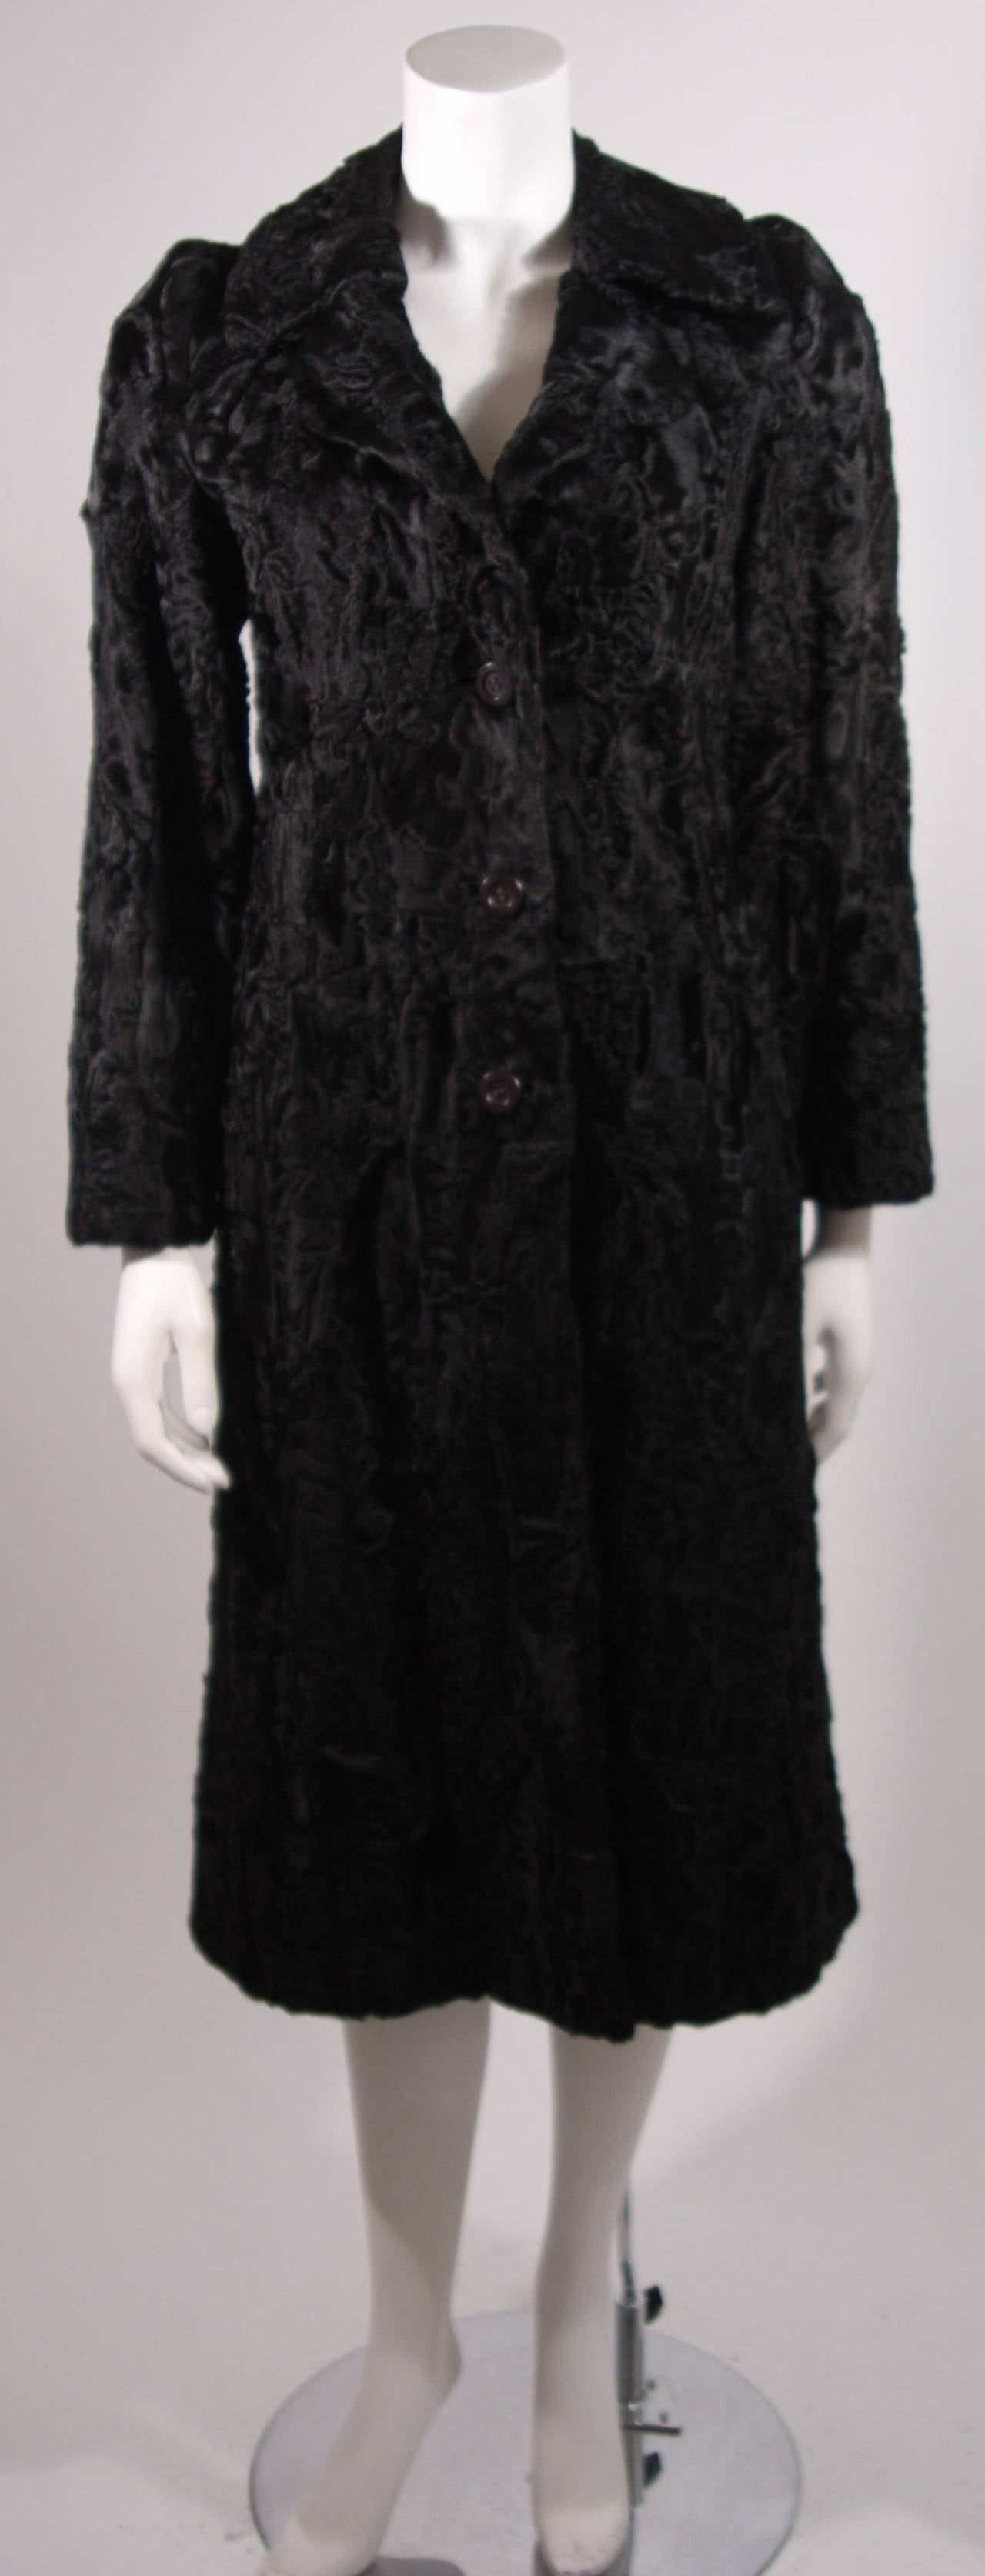 Donald Brooks Black Russian Broadtail Coat with Belt For Sale 4